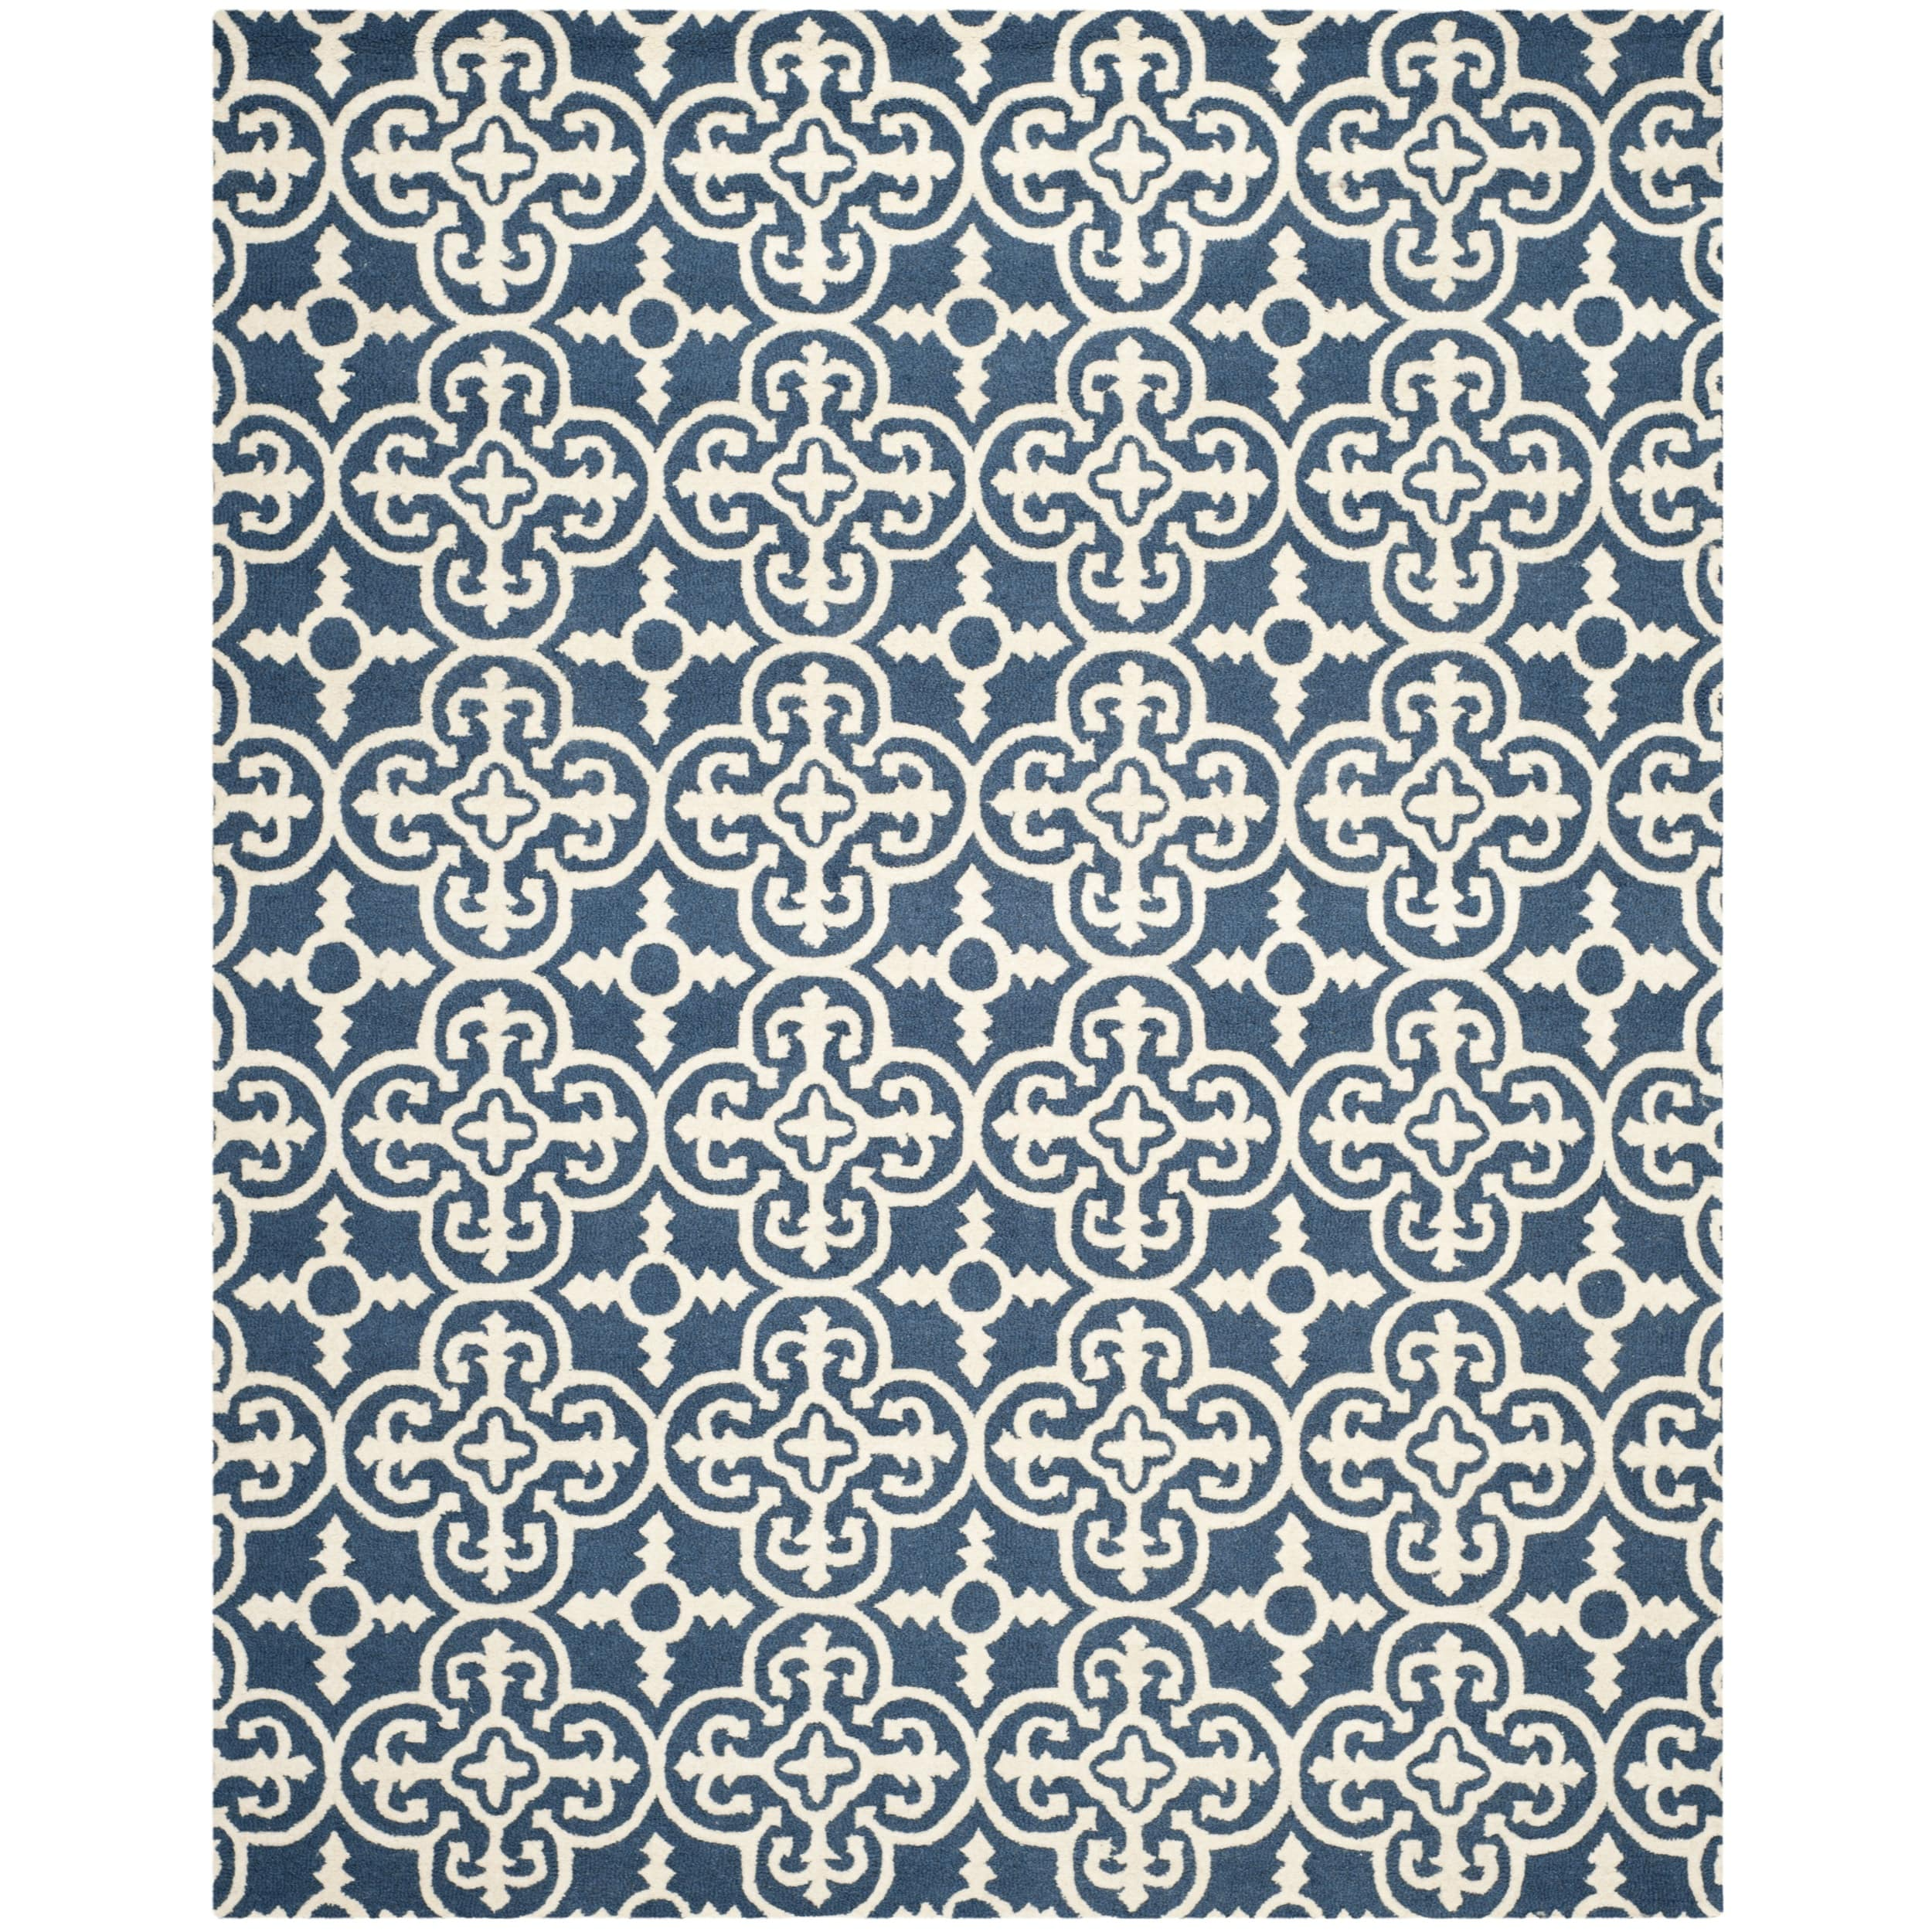 Buy 5x8 - 6x9 Rugs Online At Overstock.com